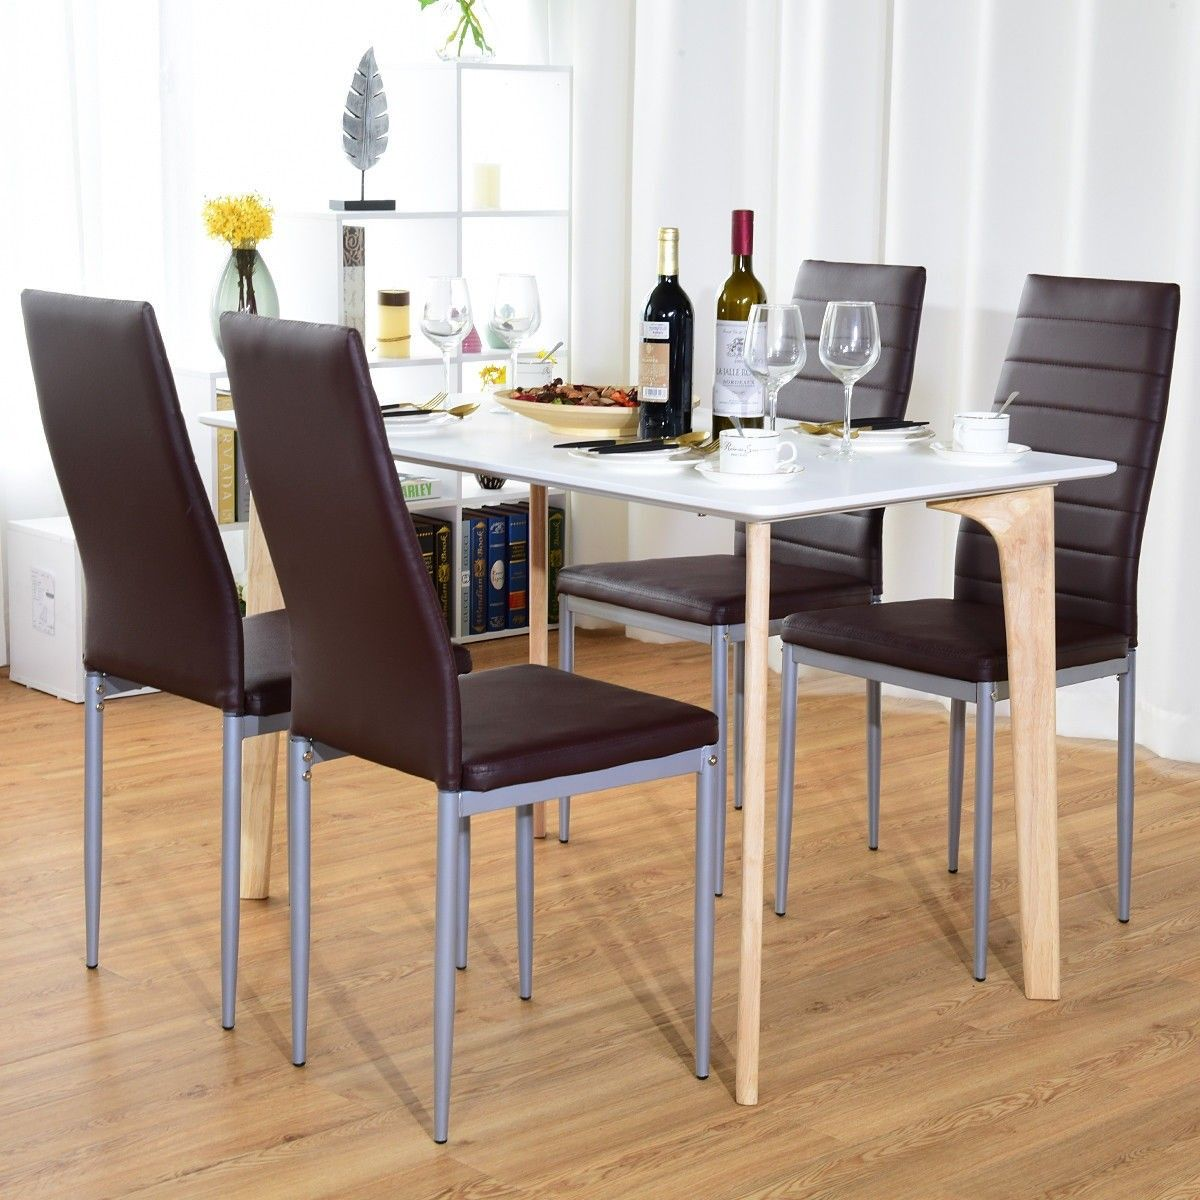 4 Pcs Pvc Leather Elegant Design Dining